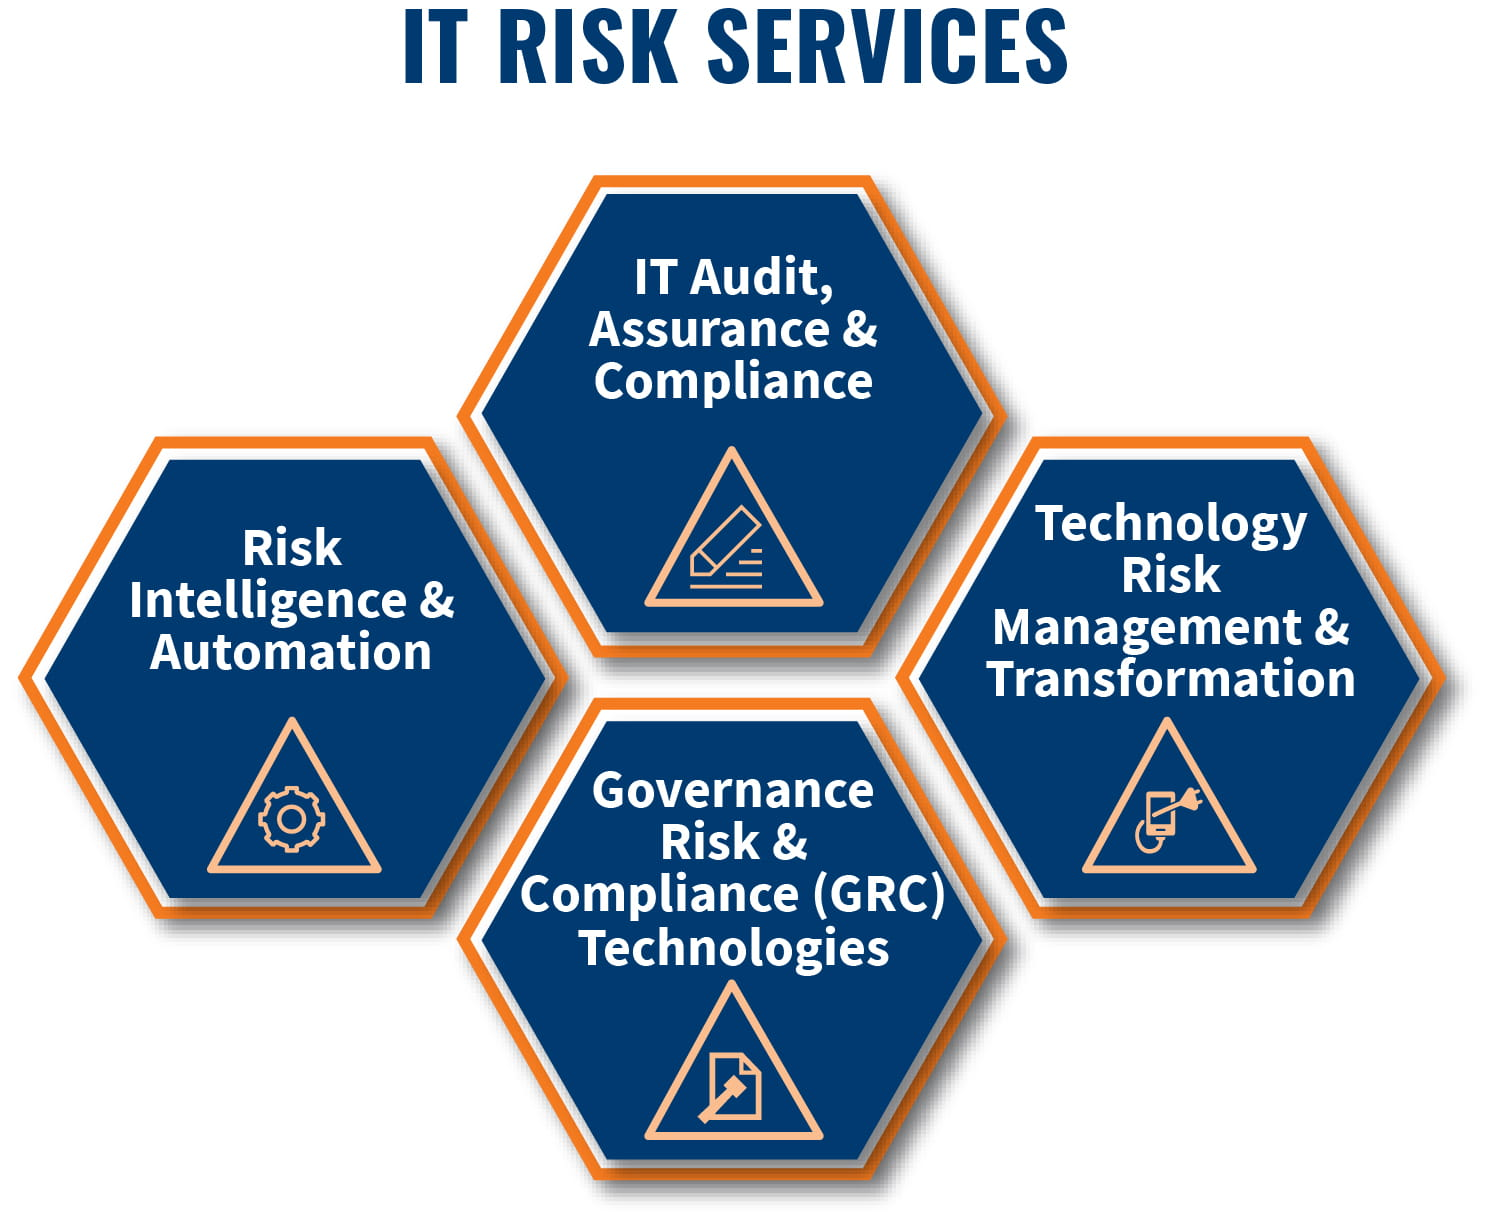 IT_Risk_Services